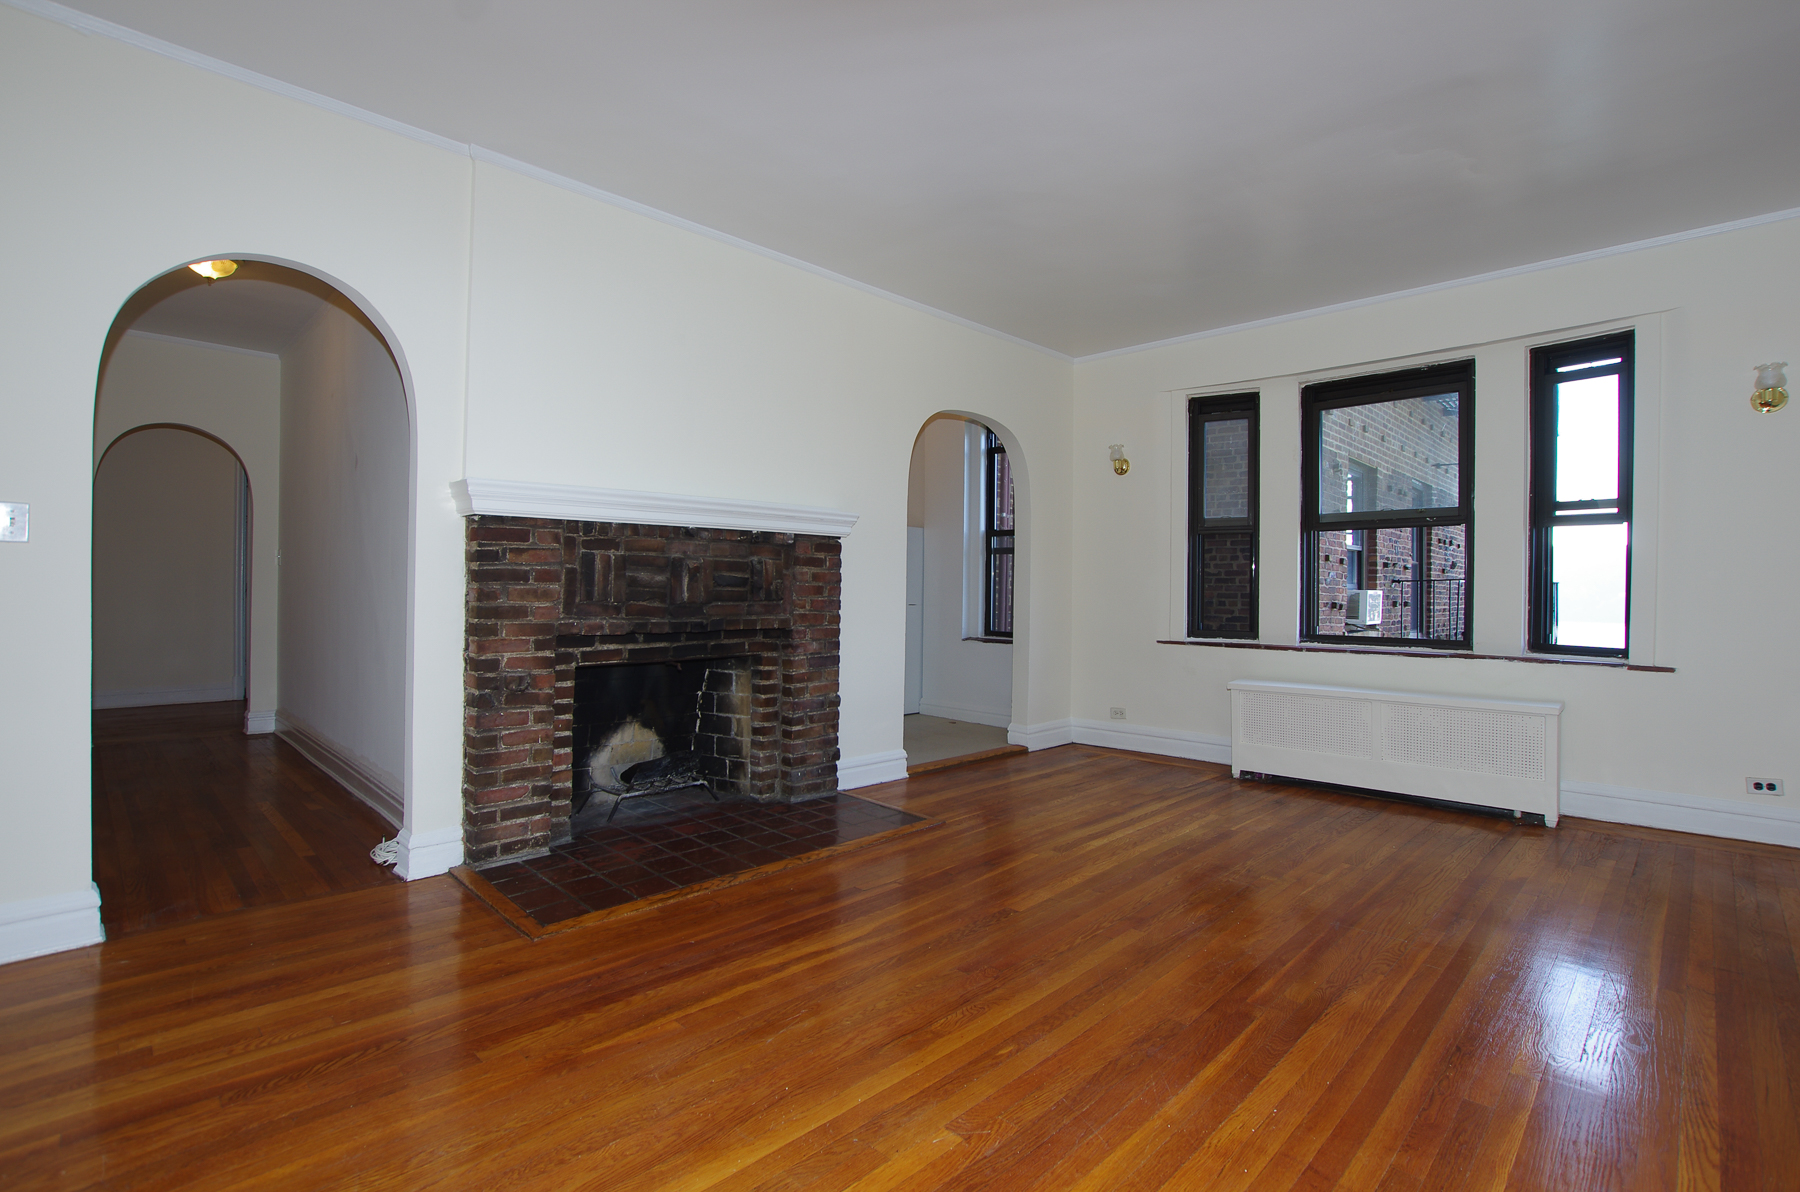 Apartment for Rent at 2 BR Prewar with River Views 2475 Palisade Avenue 3B Riverdale, New York 10463 United States